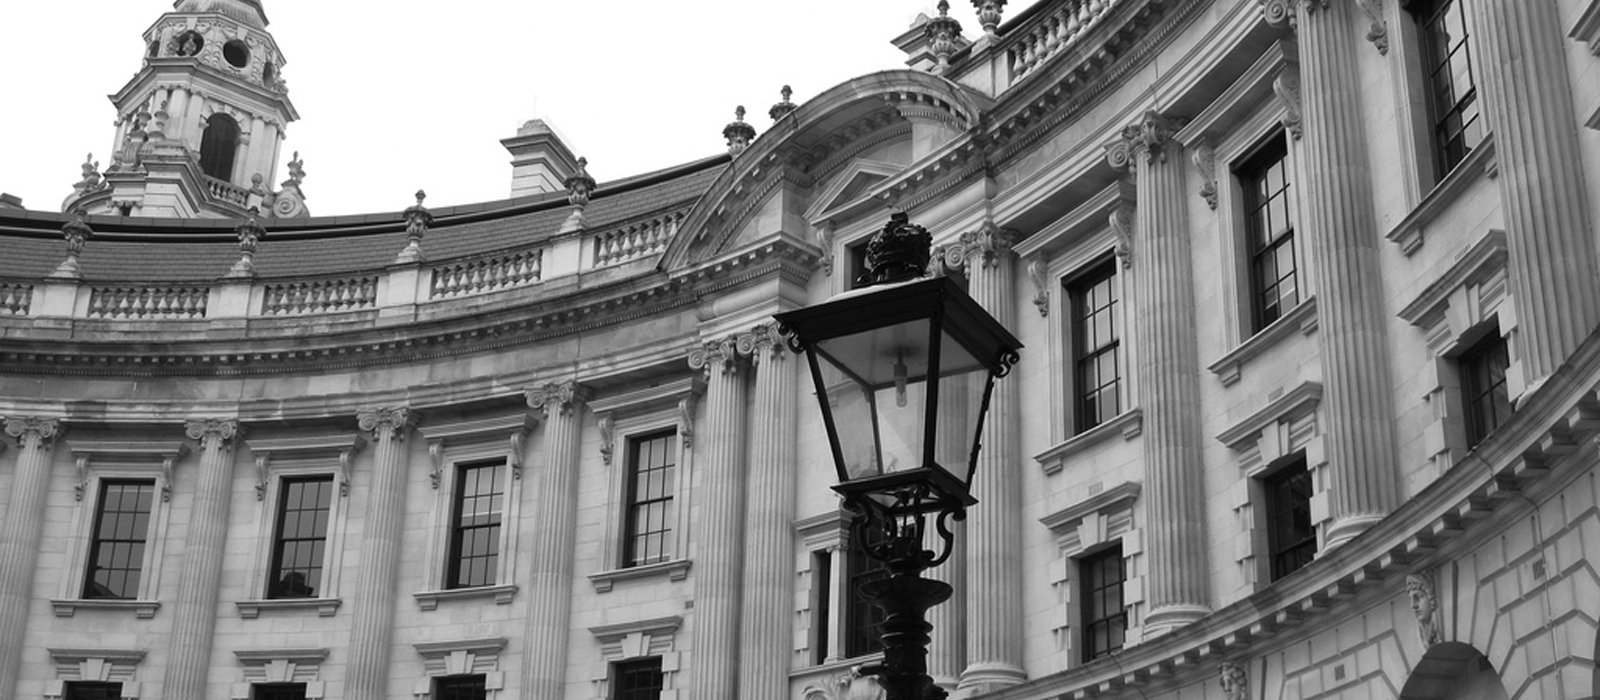 HM Treasury in London